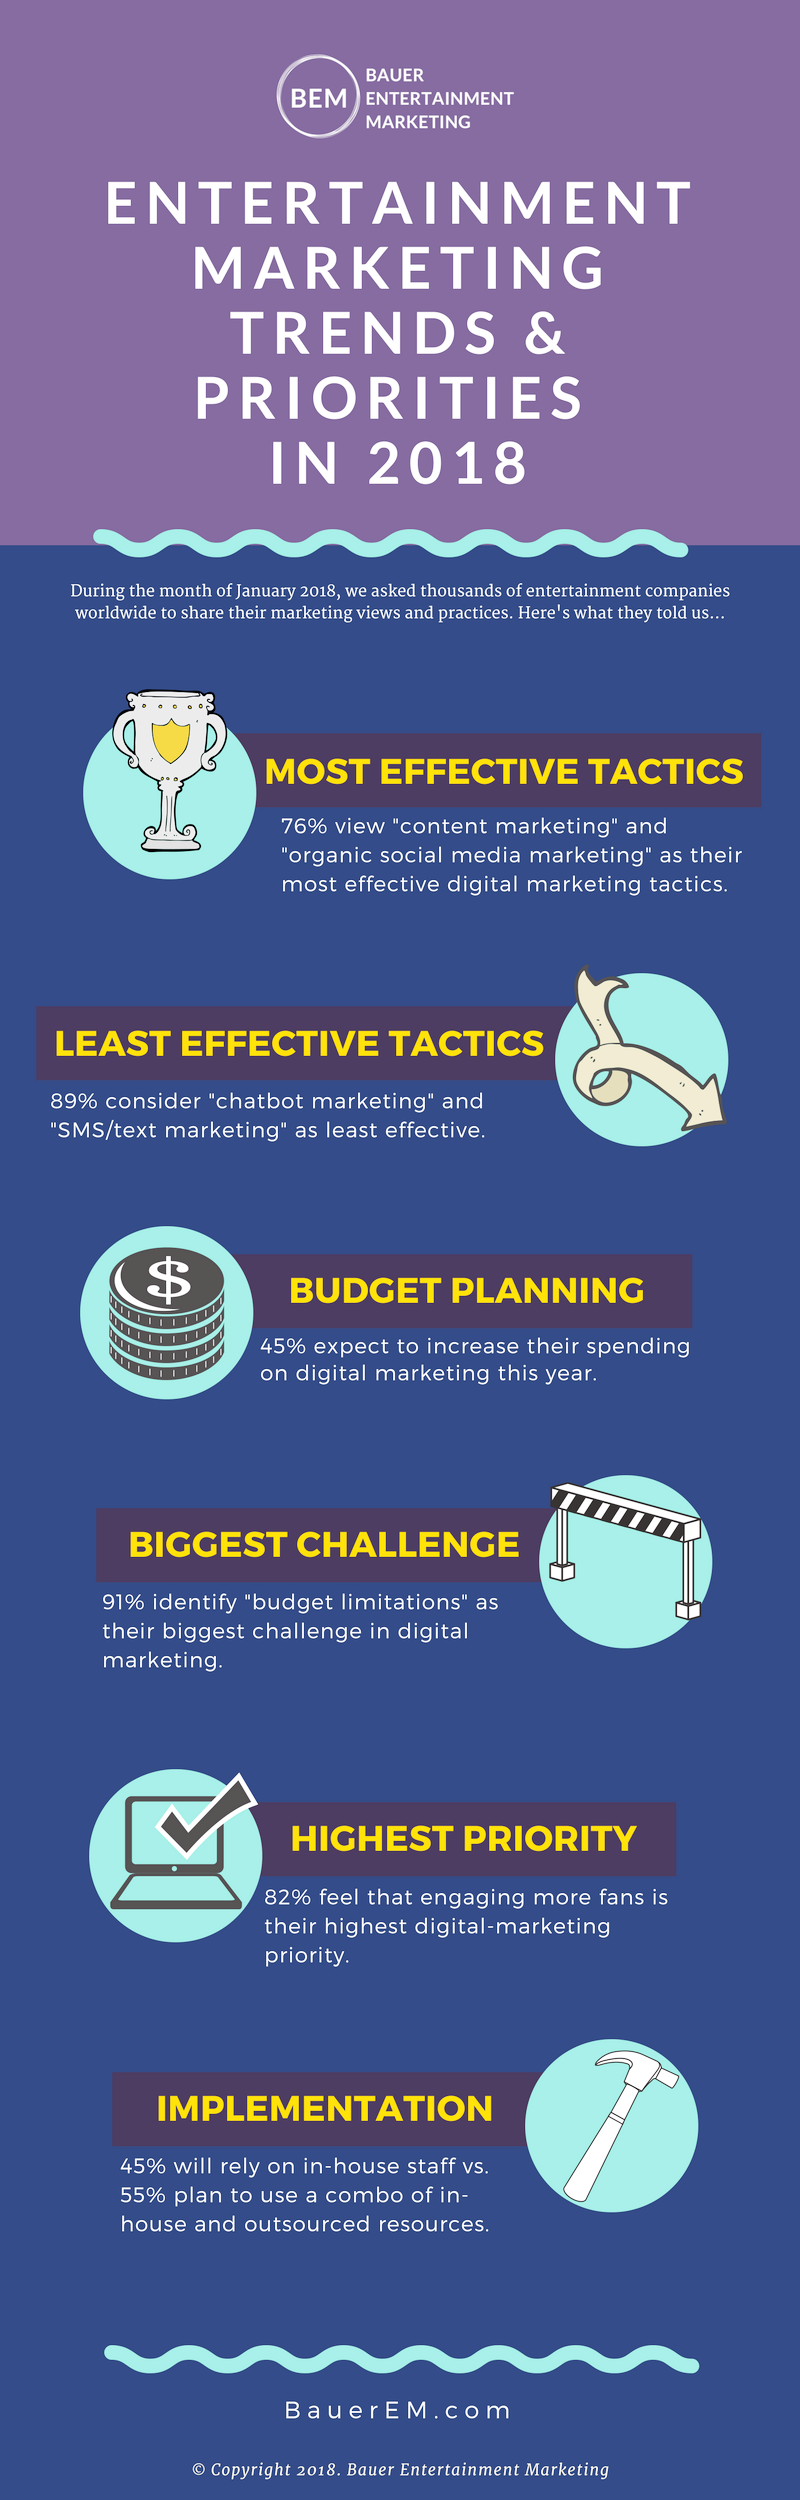 INFOGRAPHIC - 2018 Entertainment Marketing Trends & Priorities.png